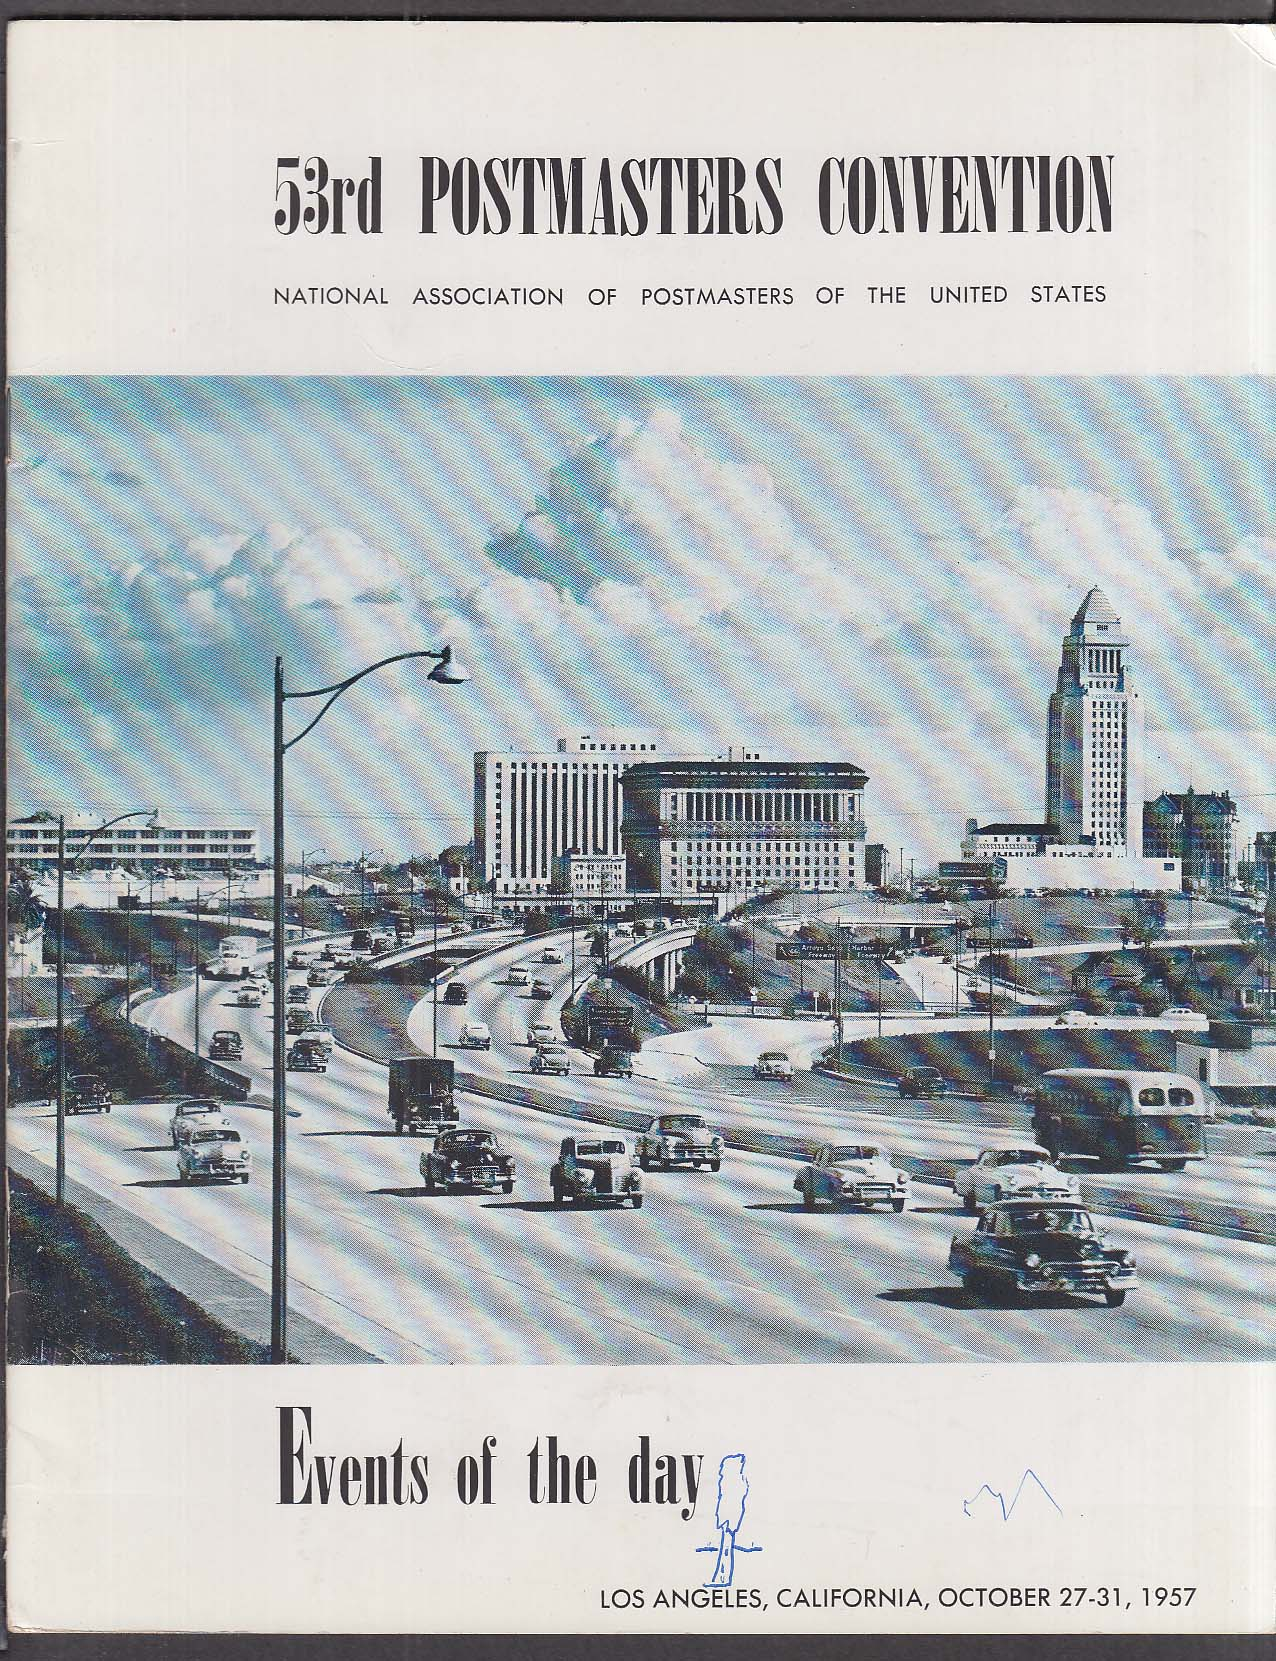 53rd Postmasters Convention 10 1957 Los Angeles CA program